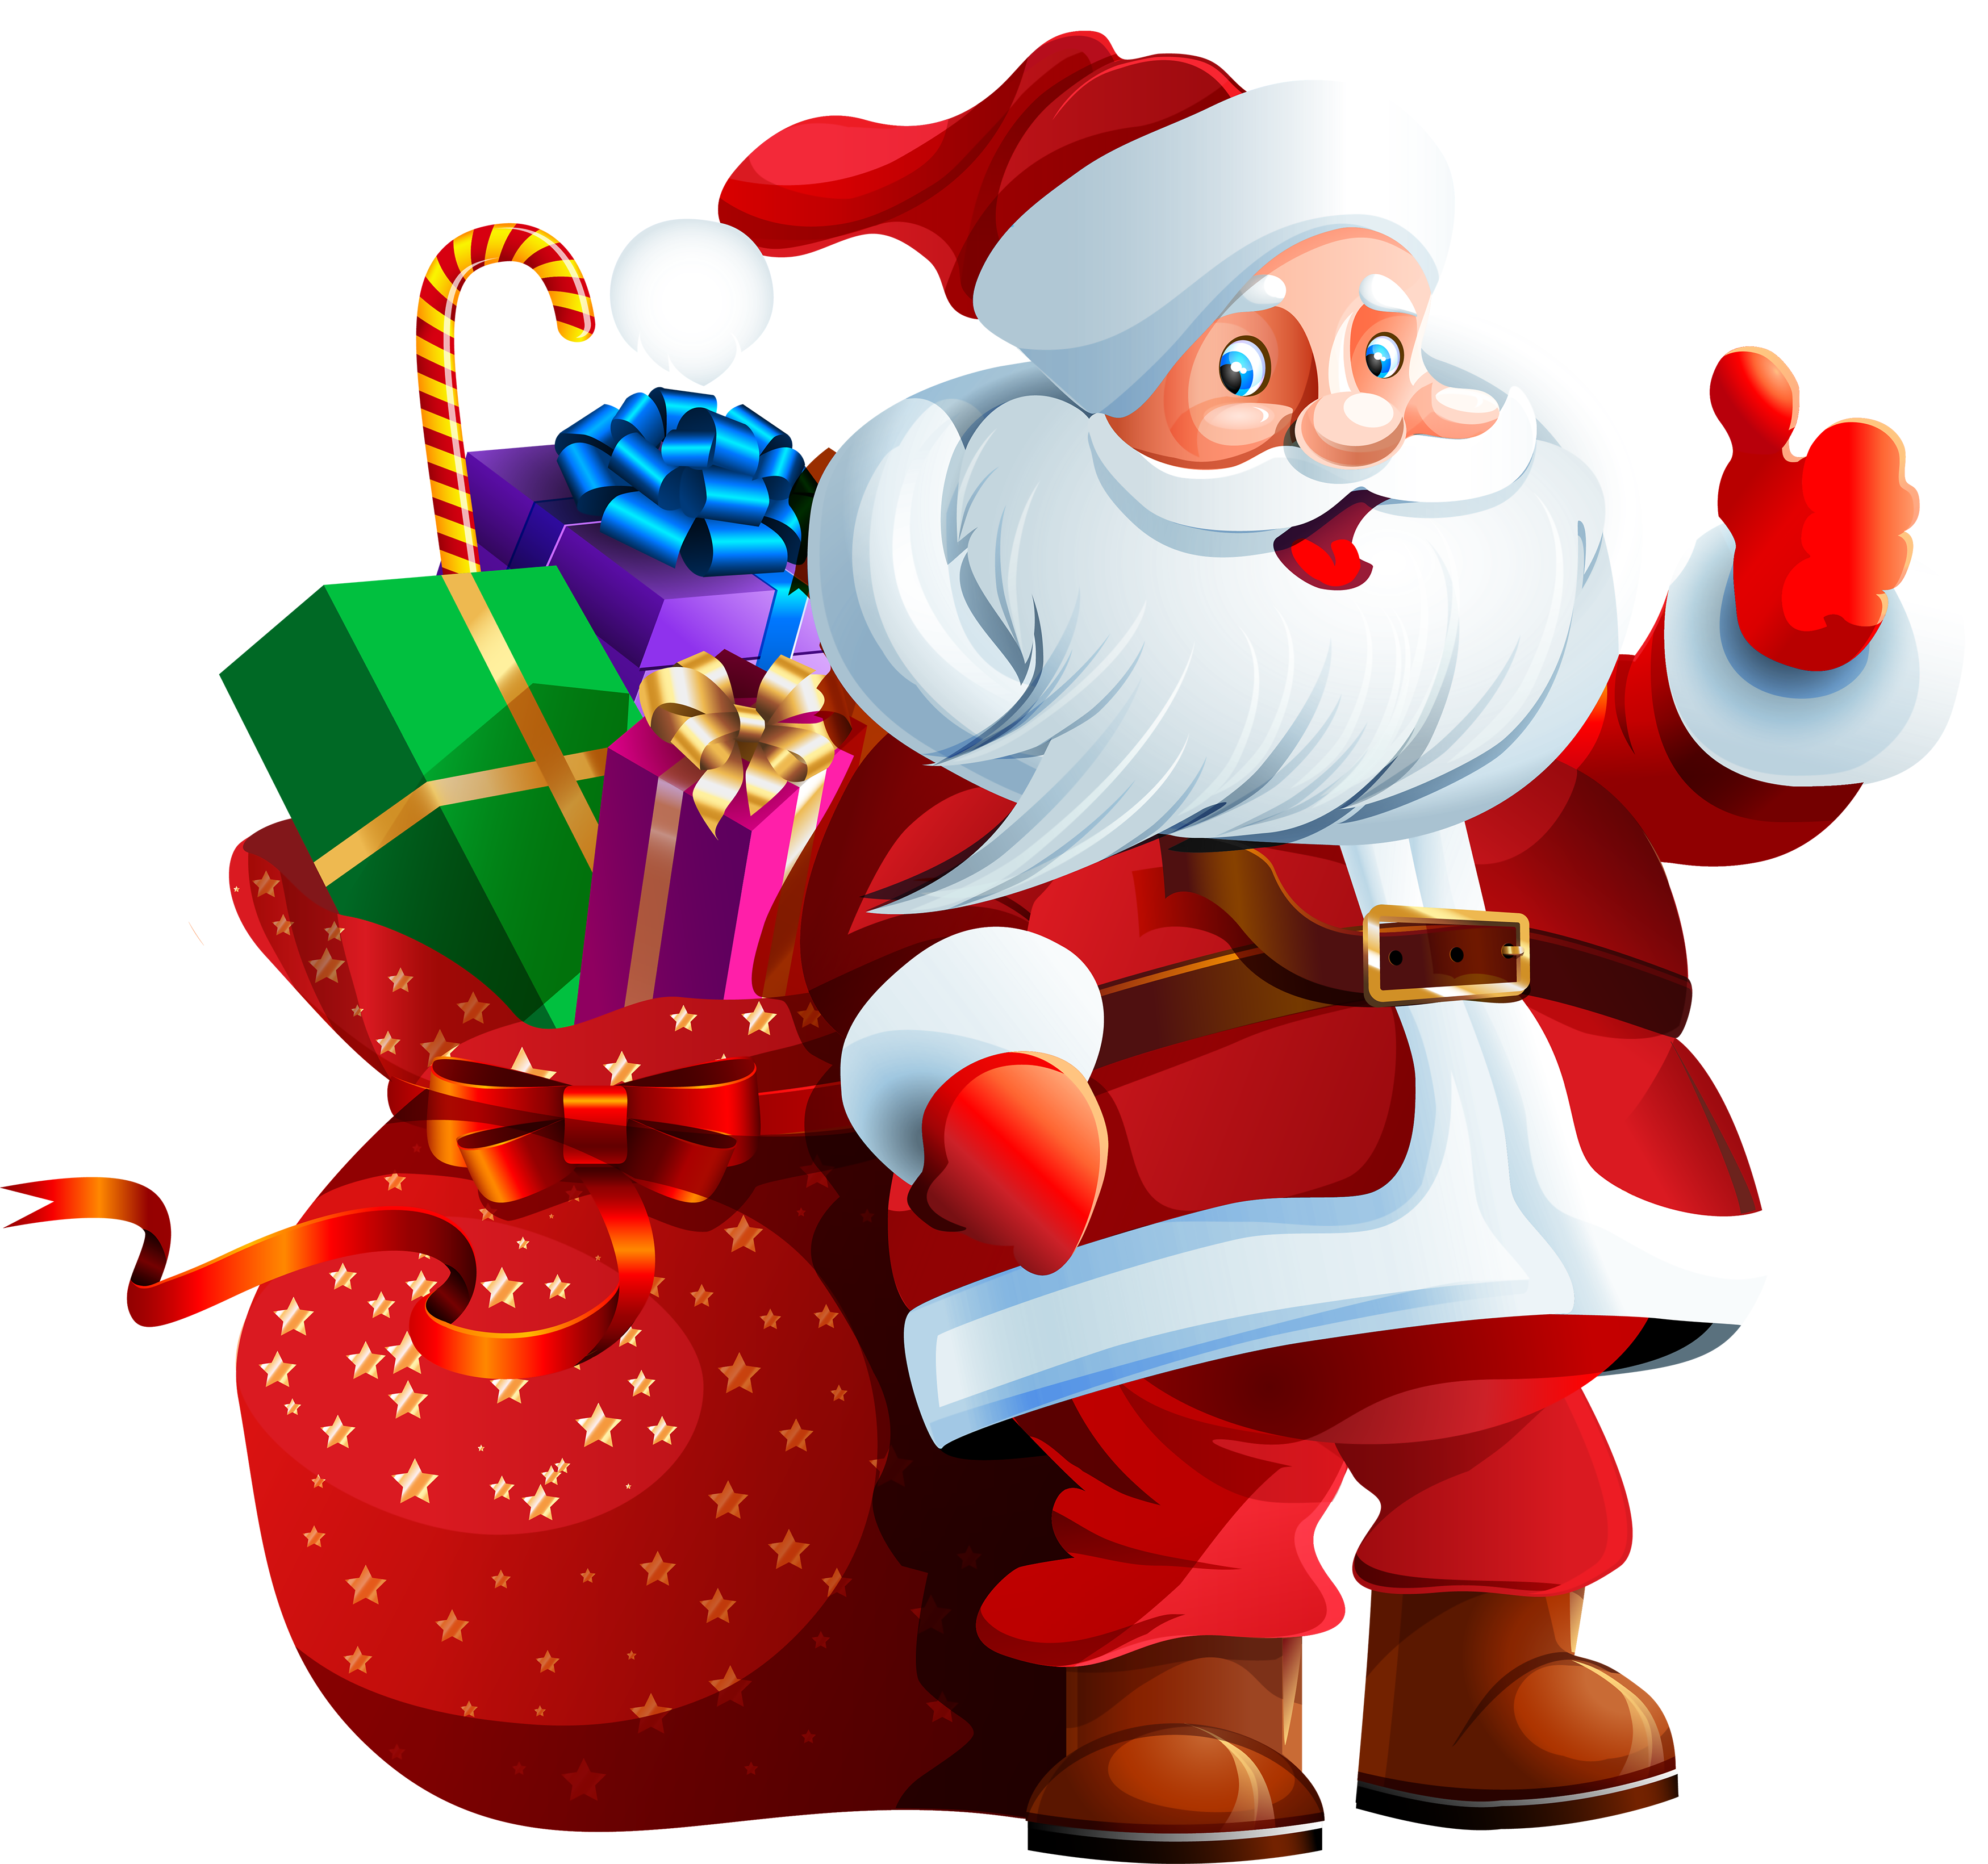 Christmas Clipart Png.Pin By Joseph Kd On Santa Santa Claus Clipart Santa Claus